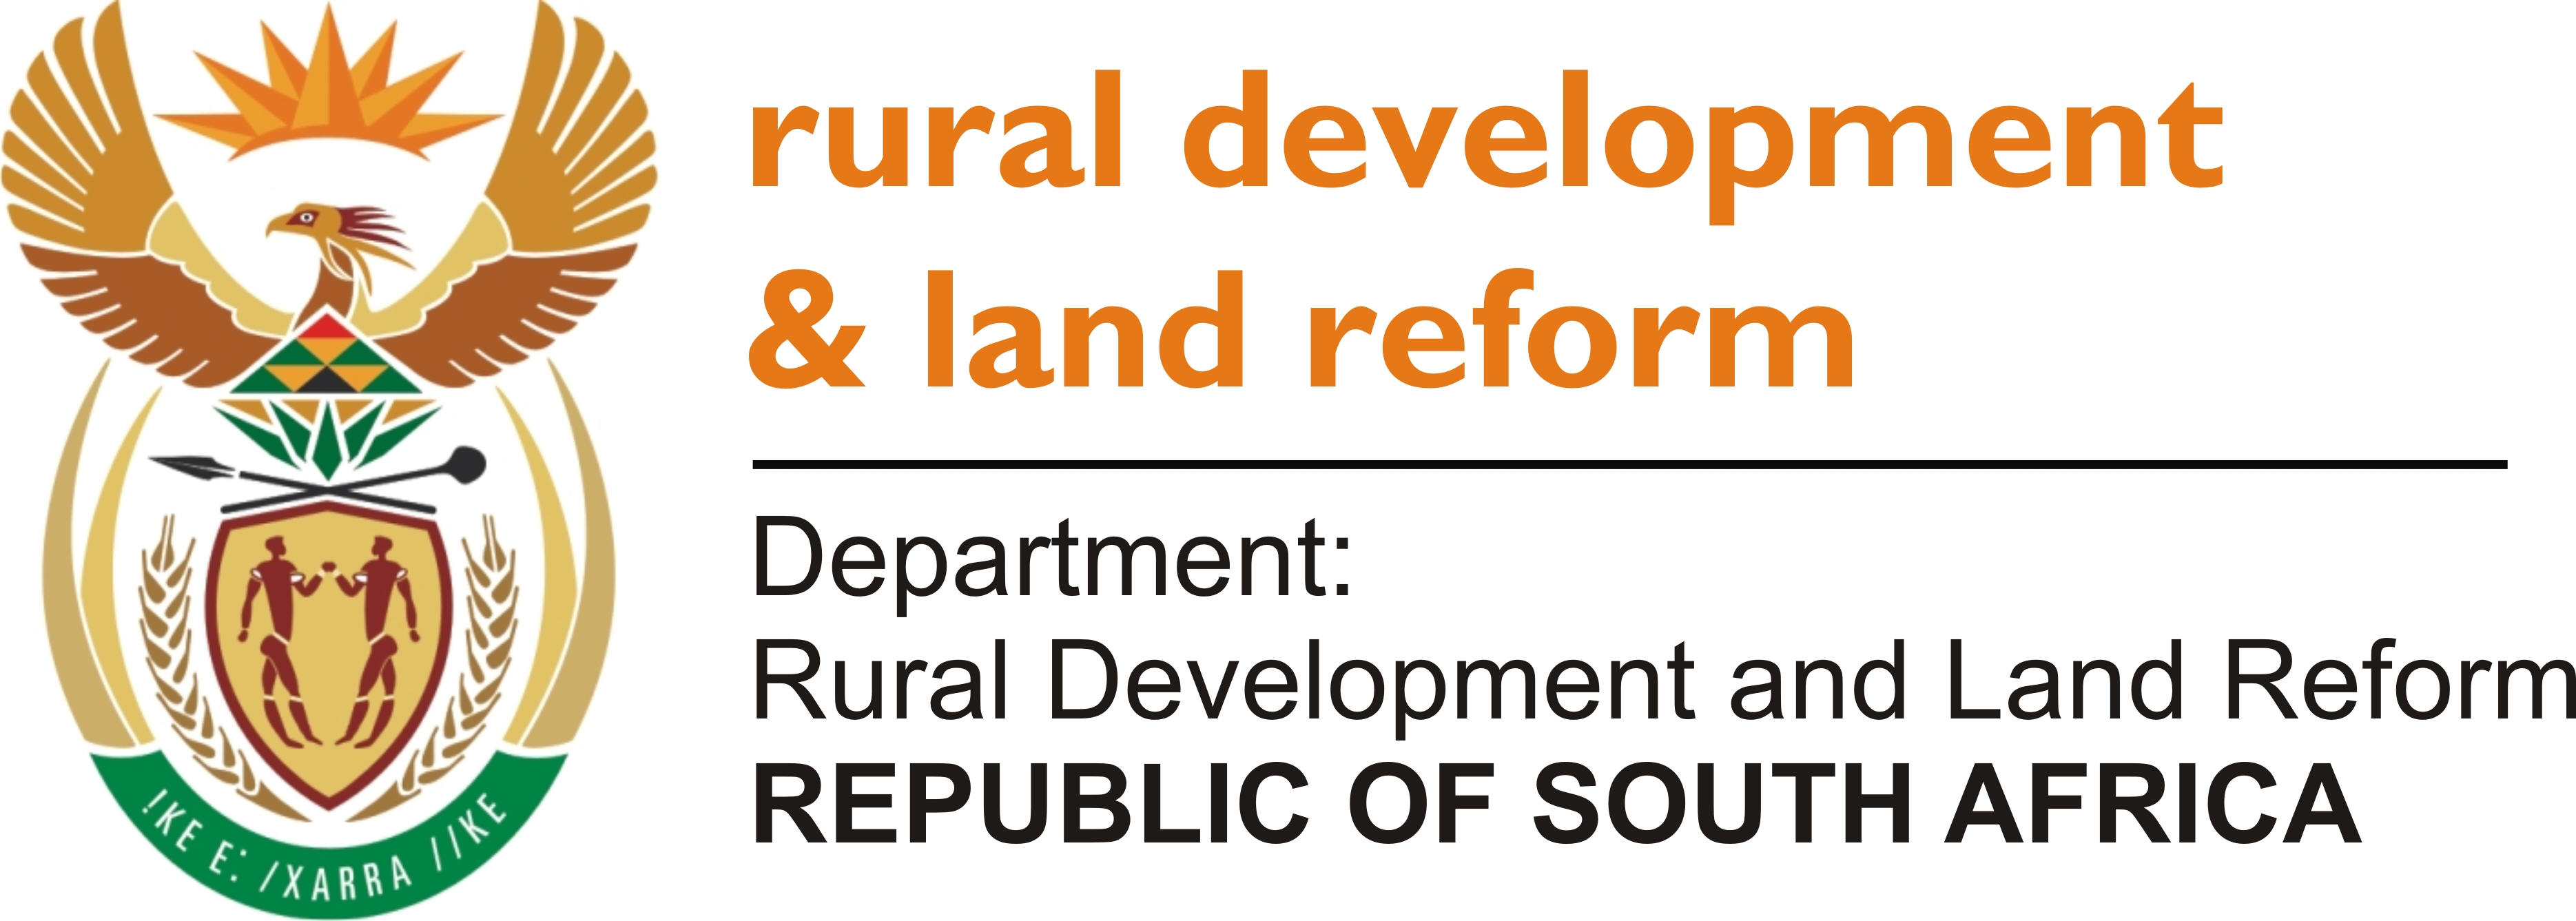 Land reform in India